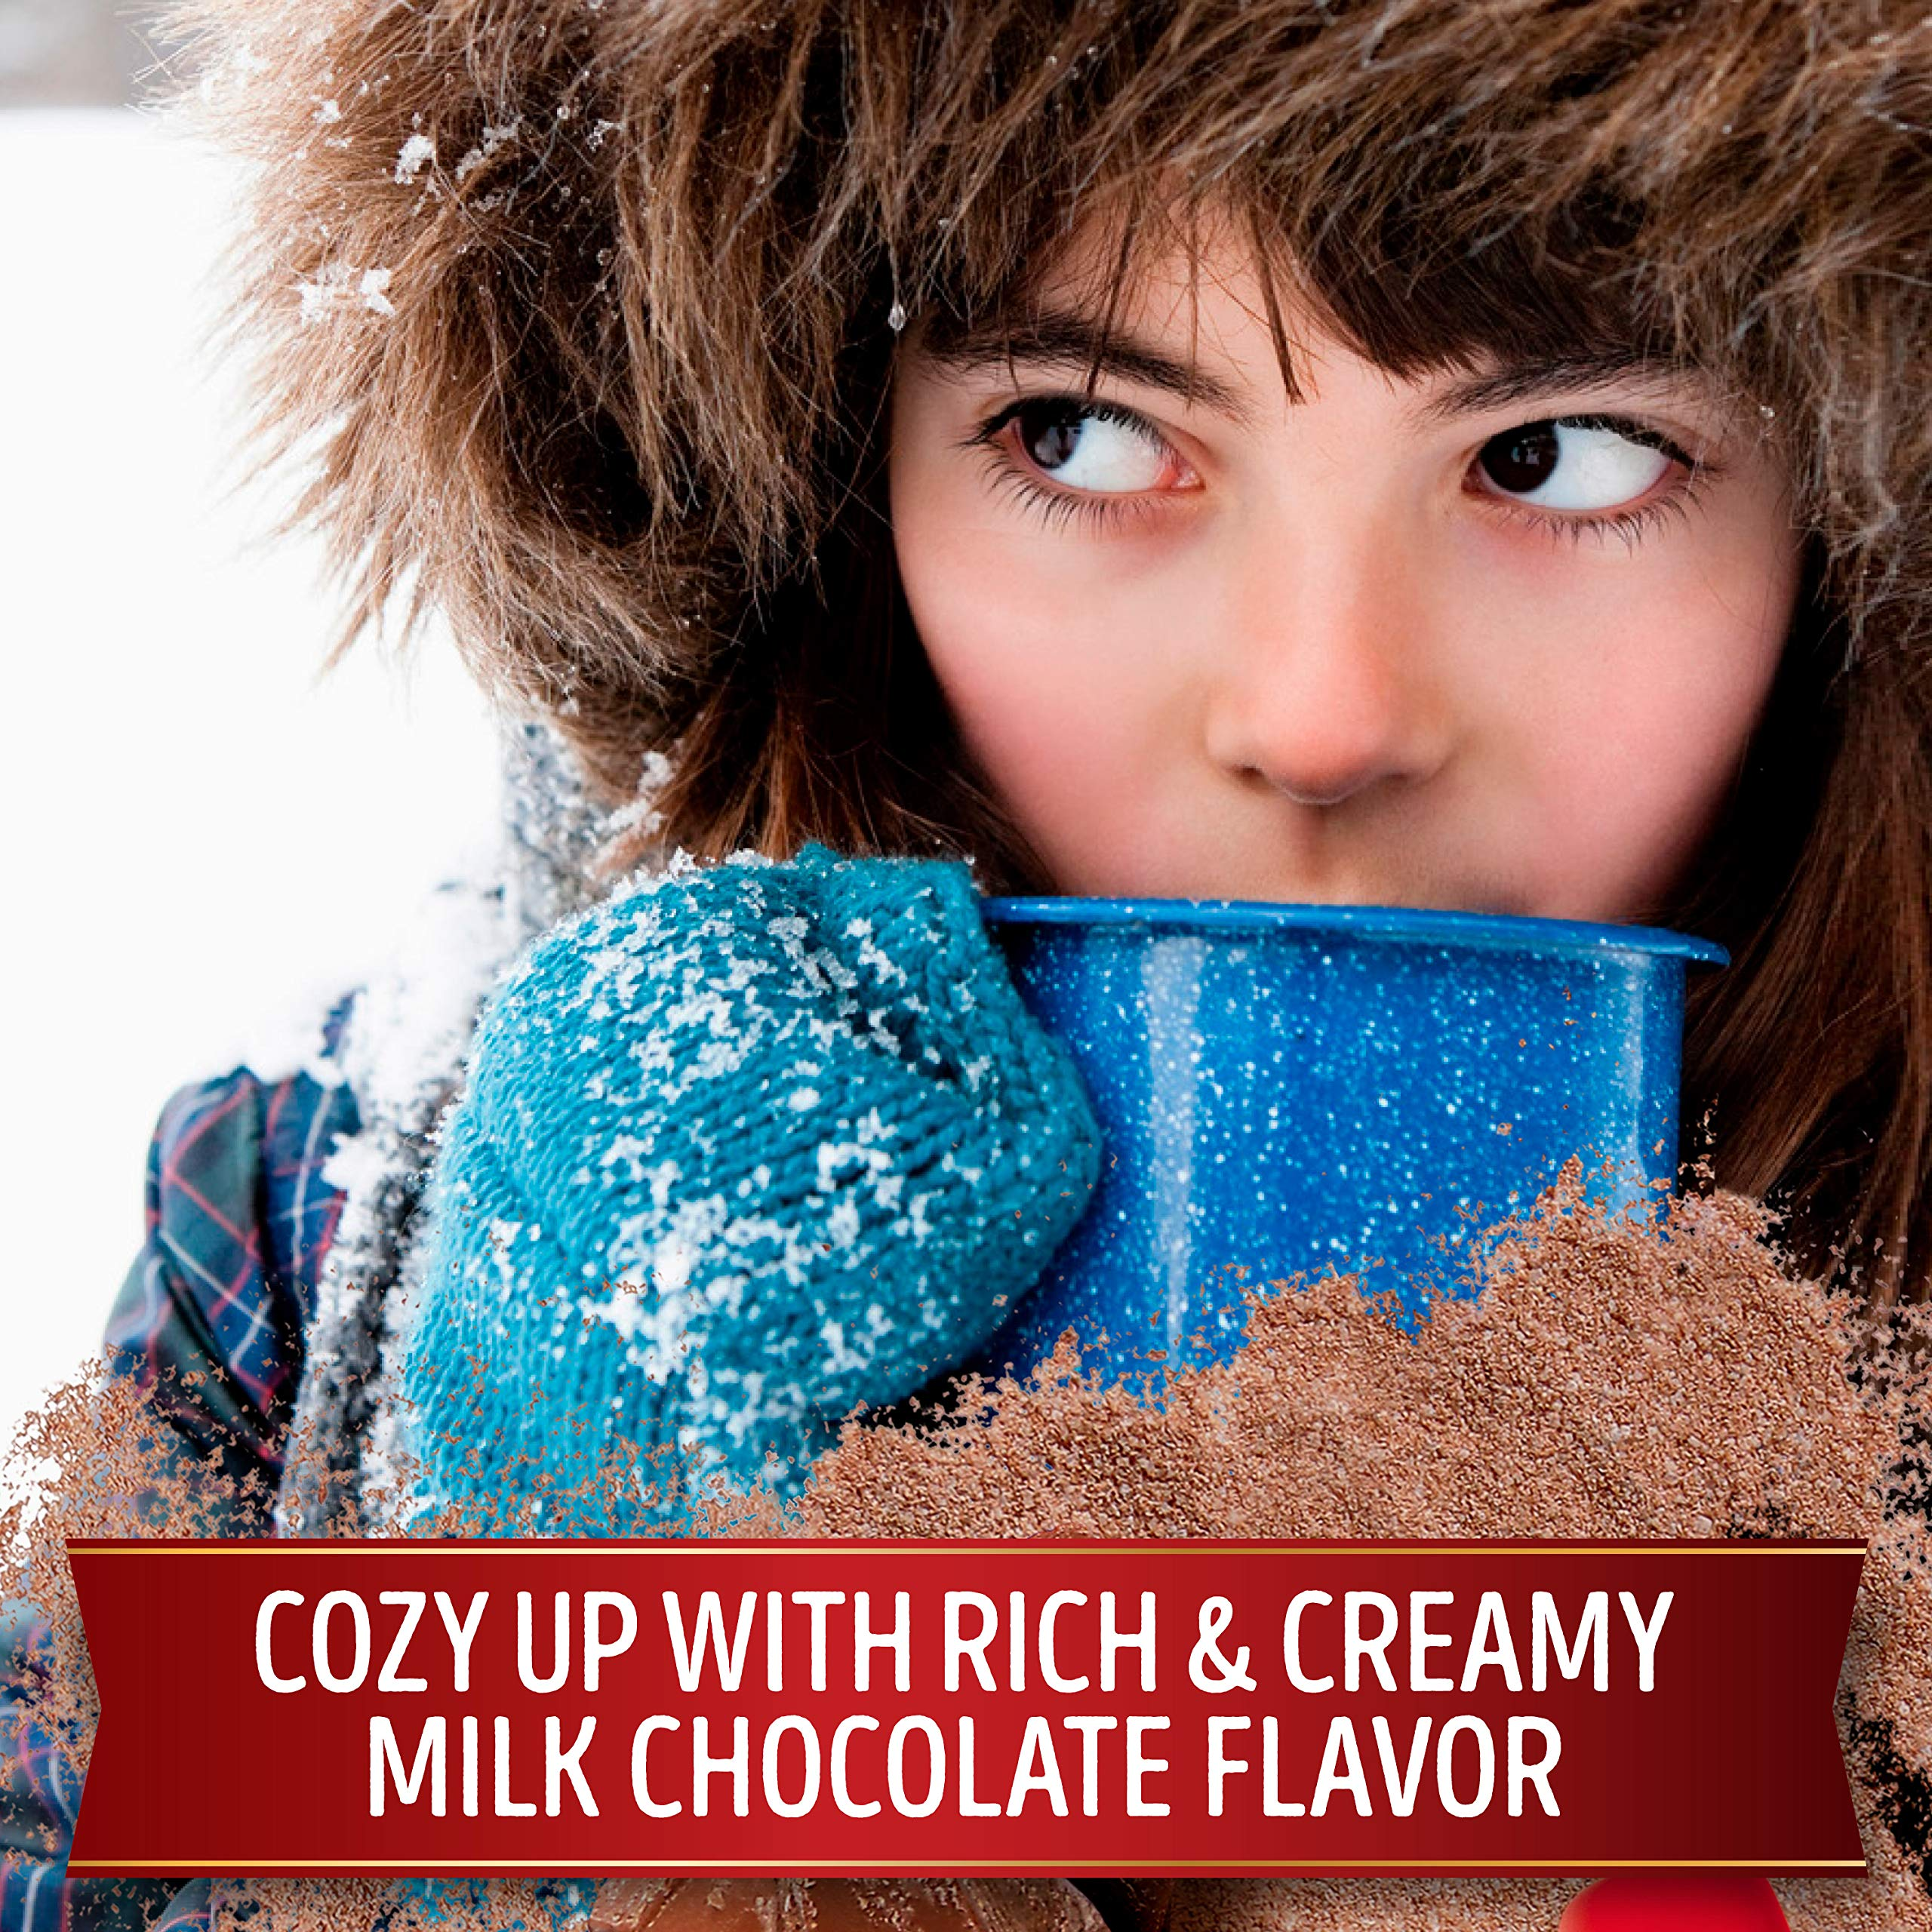 Swiss Miss Milk Chocolate Flavor Hot Cocoa Mix, 30Count 41.4 oz 8 Pack by Swiss Miss (Image #3)